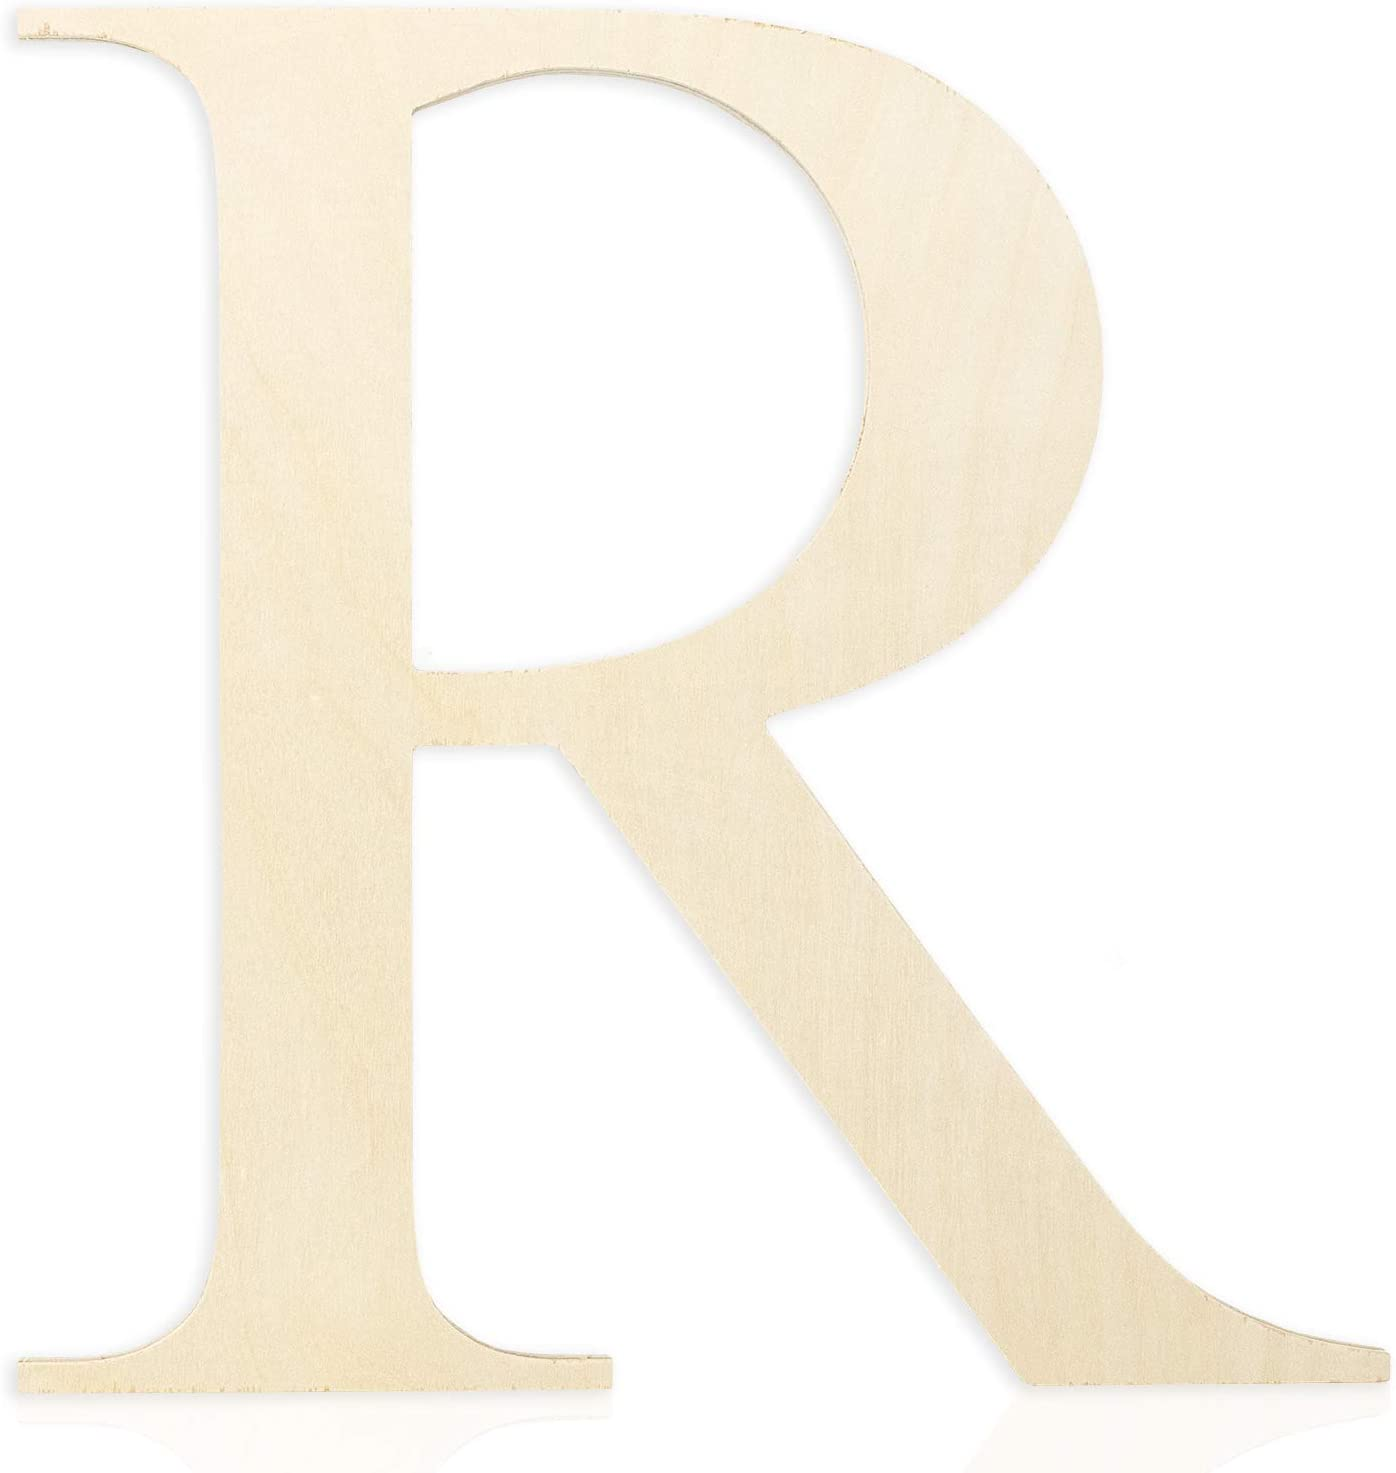 Wooden Letters 12 Inch (Letter R) Unfinished Wood Letters for Wall Décor, Crafts & Weddings. Wall Letter Signs for Home Decoration Painting with Full Alphabet Range Available - 0.5 Inch Thickness